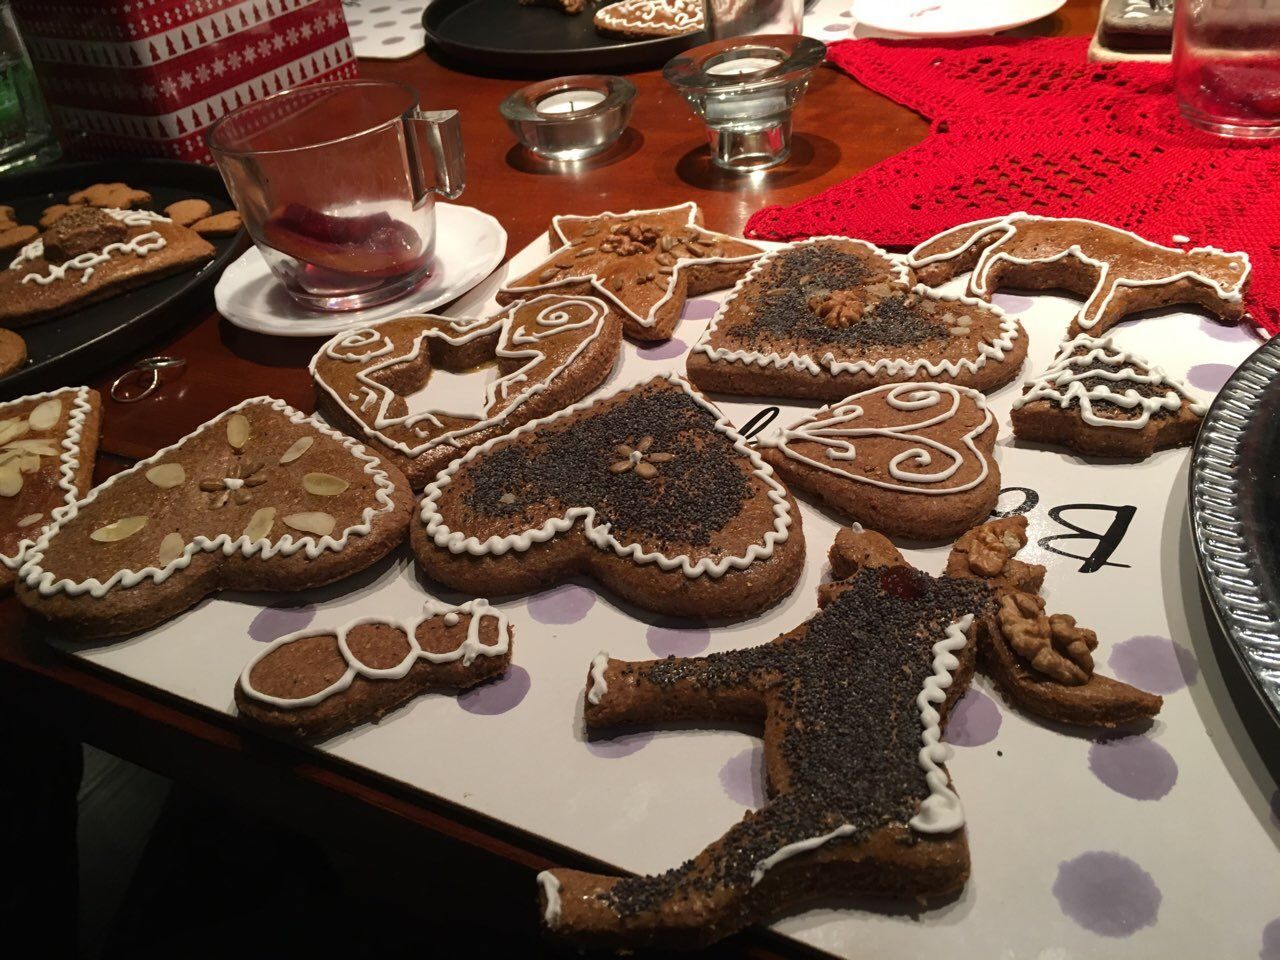 Pin by Dervalics Anita on Ádvent Desserts, Gingerbread